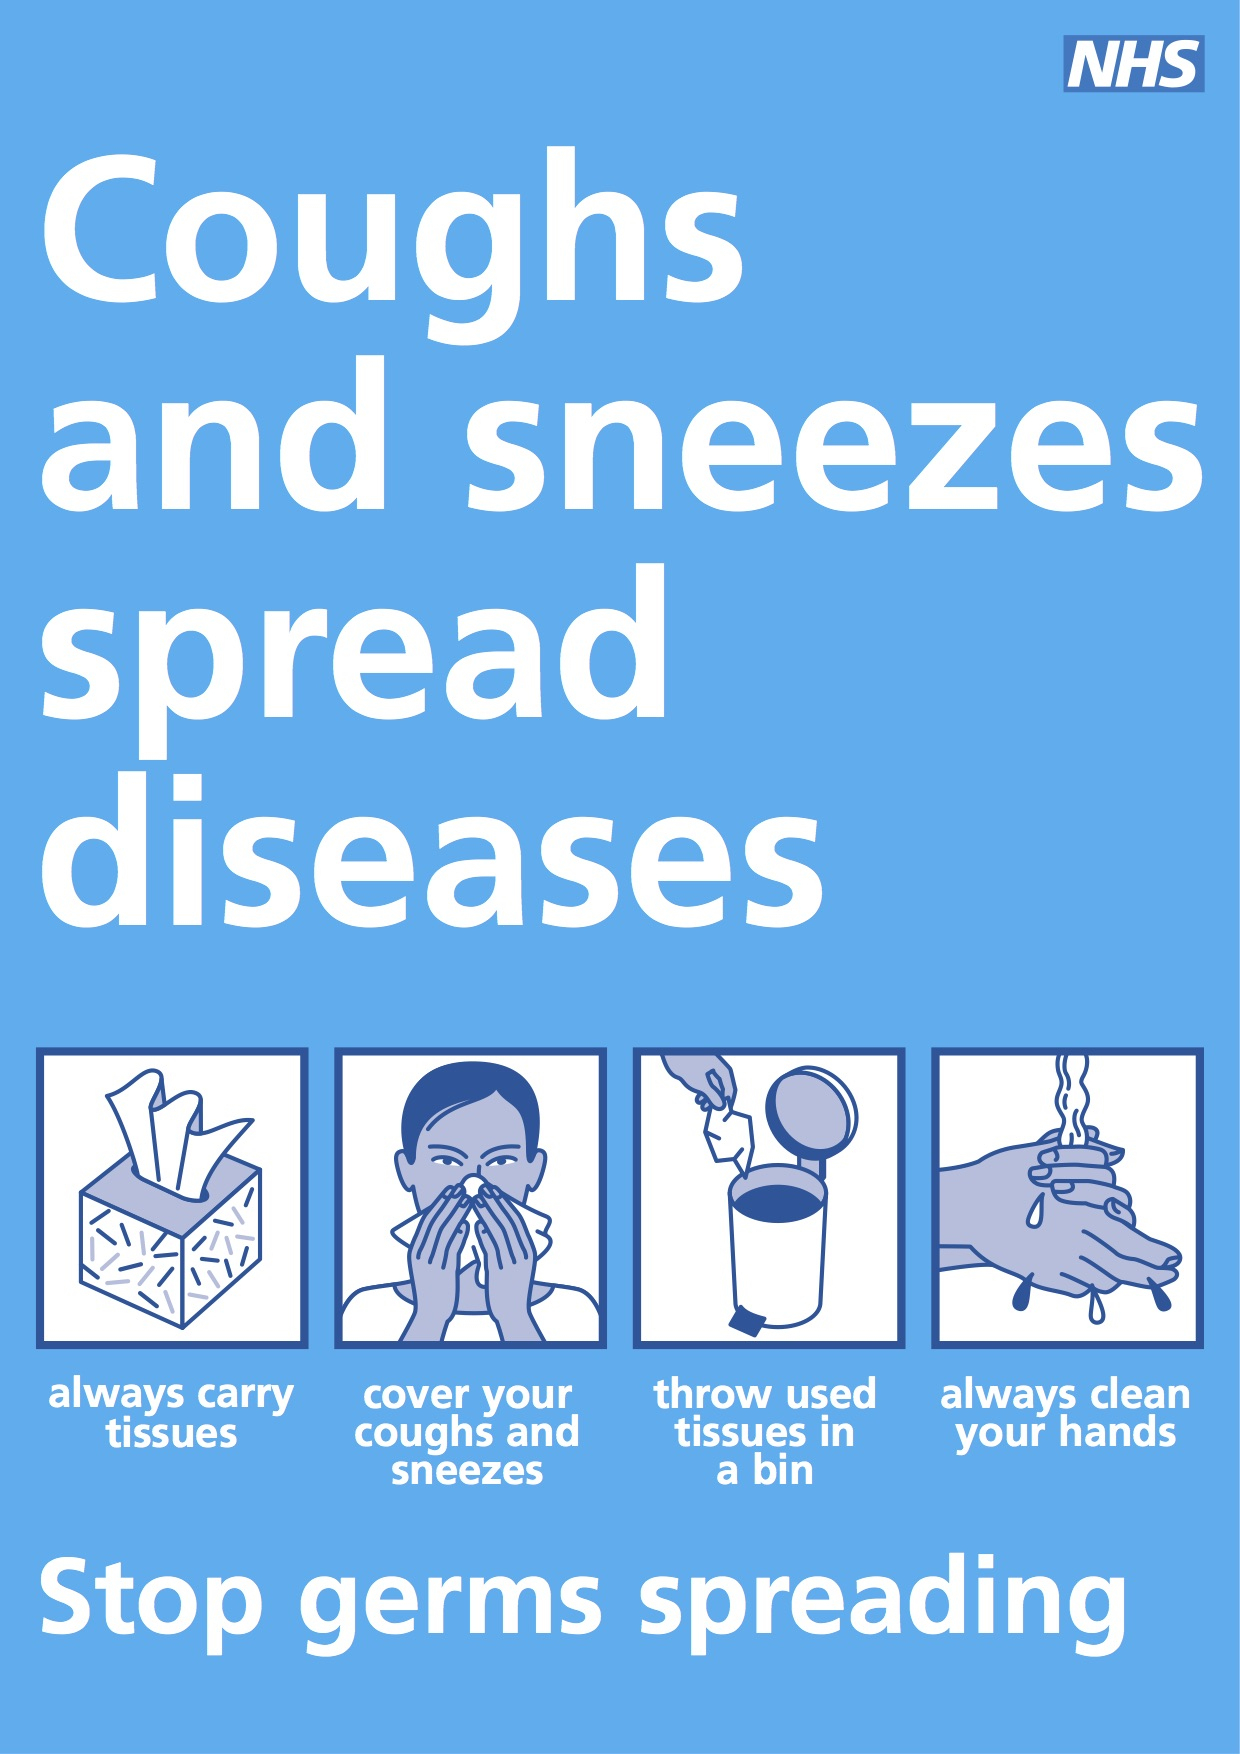 Free Infection Control / Handwashing Poster Downloads - Free Wash Your Hands Signs Printable